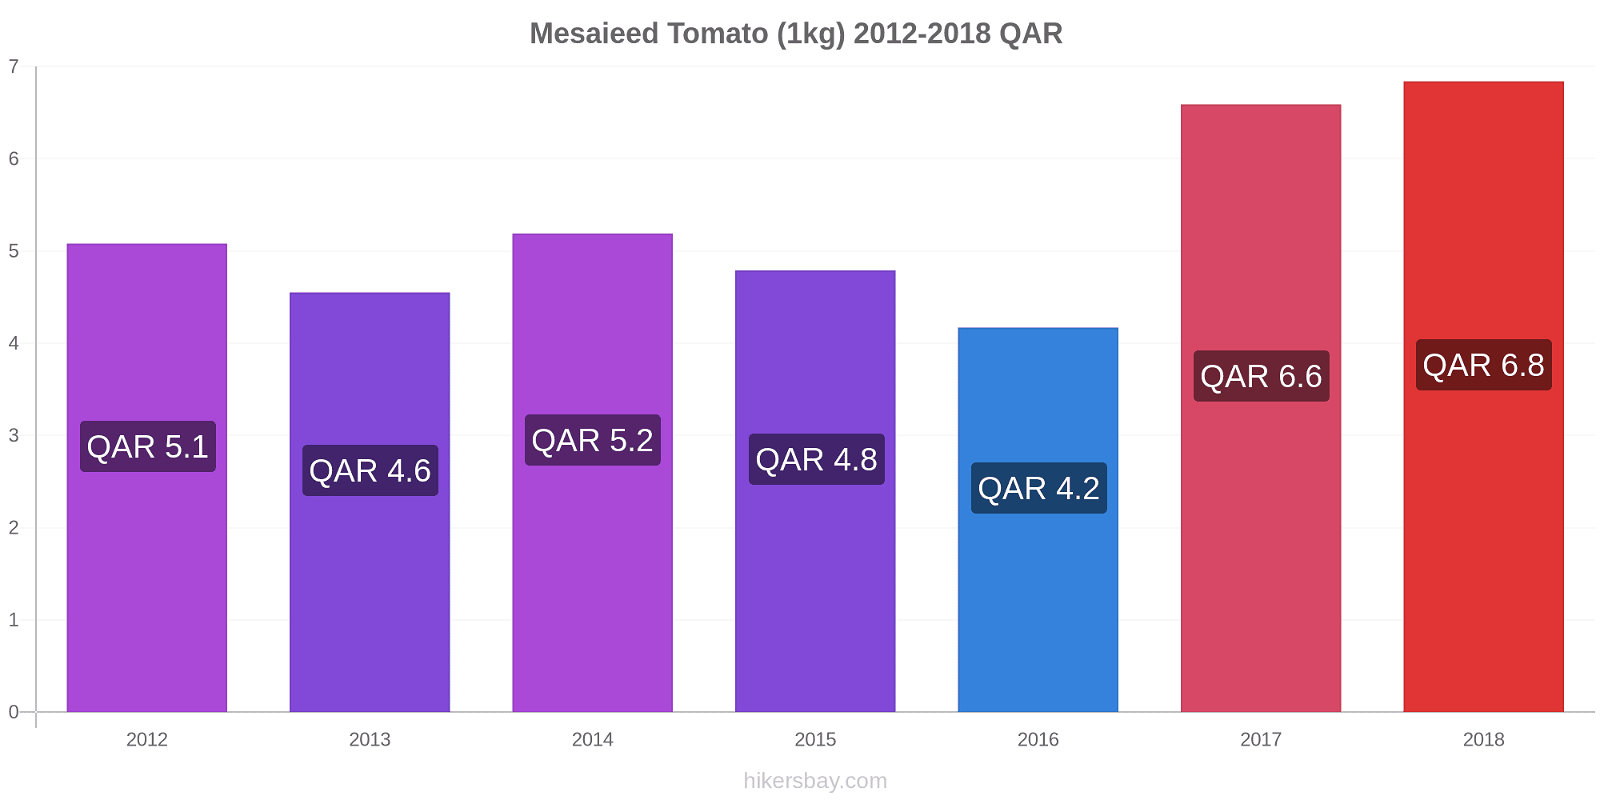 Mesaieed price changes Tomato (1kg) hikersbay.com